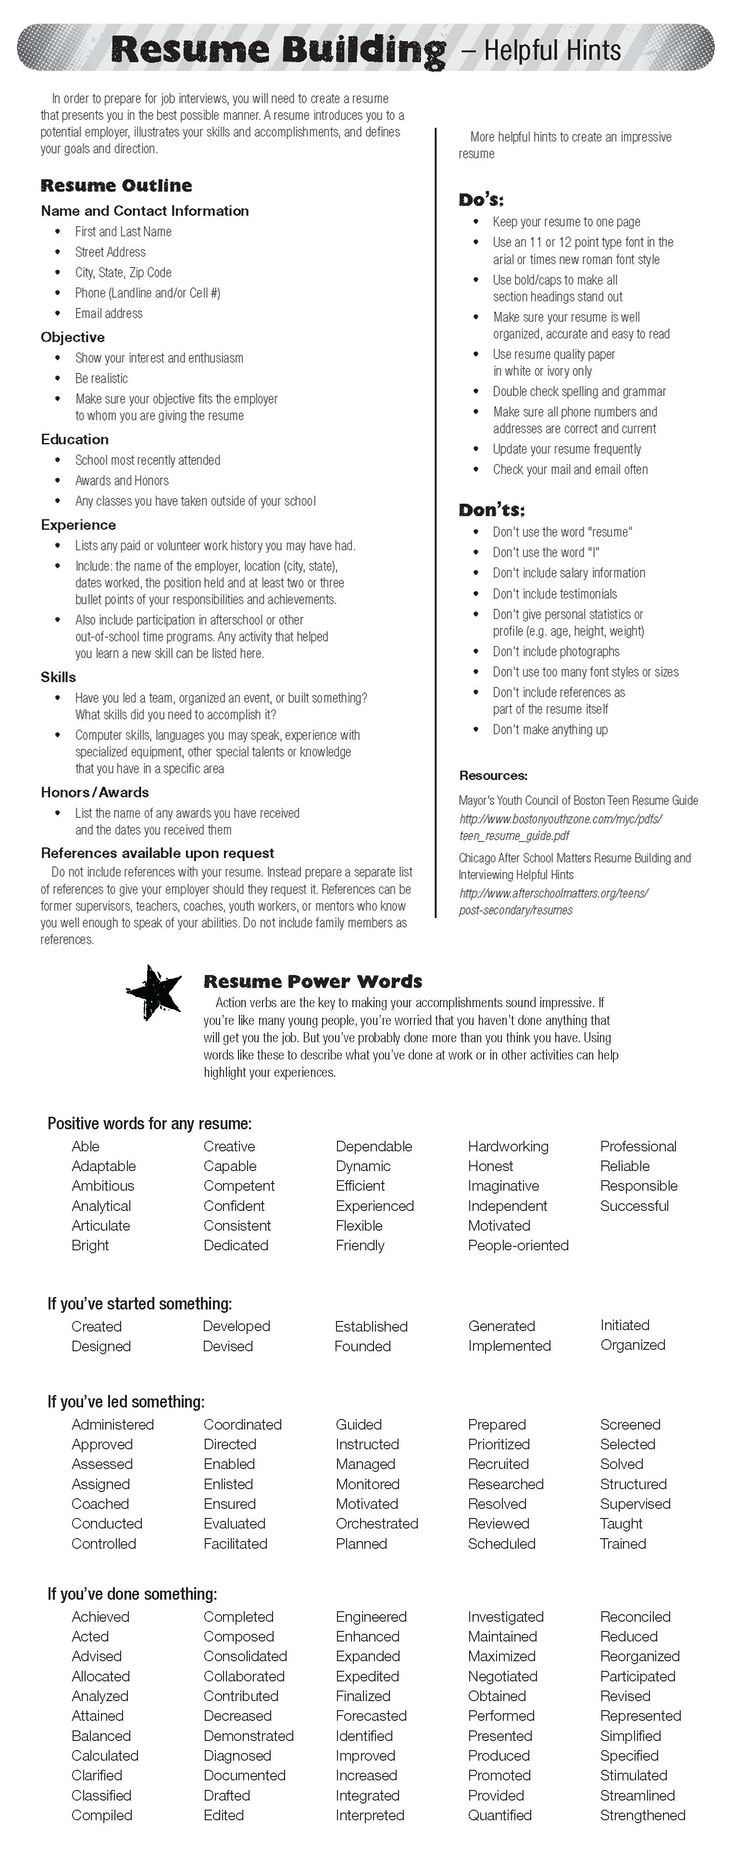 Opposenewapstandardsus  Nice  Ideas About Resume On Pinterest  Cv Format Resume Cv And  With Handsome  Ideas About Resume On Pinterest  Cv Format Resume Cv And Resume Templates With Alluring Active Verbs Resume Also Teach For America Resume In Addition Resume Preview And Create My Resume For Free As Well As Law Enforcement Resumes Additionally Resume Mechanical Engineer From Pinterestcom With Opposenewapstandardsus  Handsome  Ideas About Resume On Pinterest  Cv Format Resume Cv And  With Alluring  Ideas About Resume On Pinterest  Cv Format Resume Cv And Resume Templates And Nice Active Verbs Resume Also Teach For America Resume In Addition Resume Preview From Pinterestcom